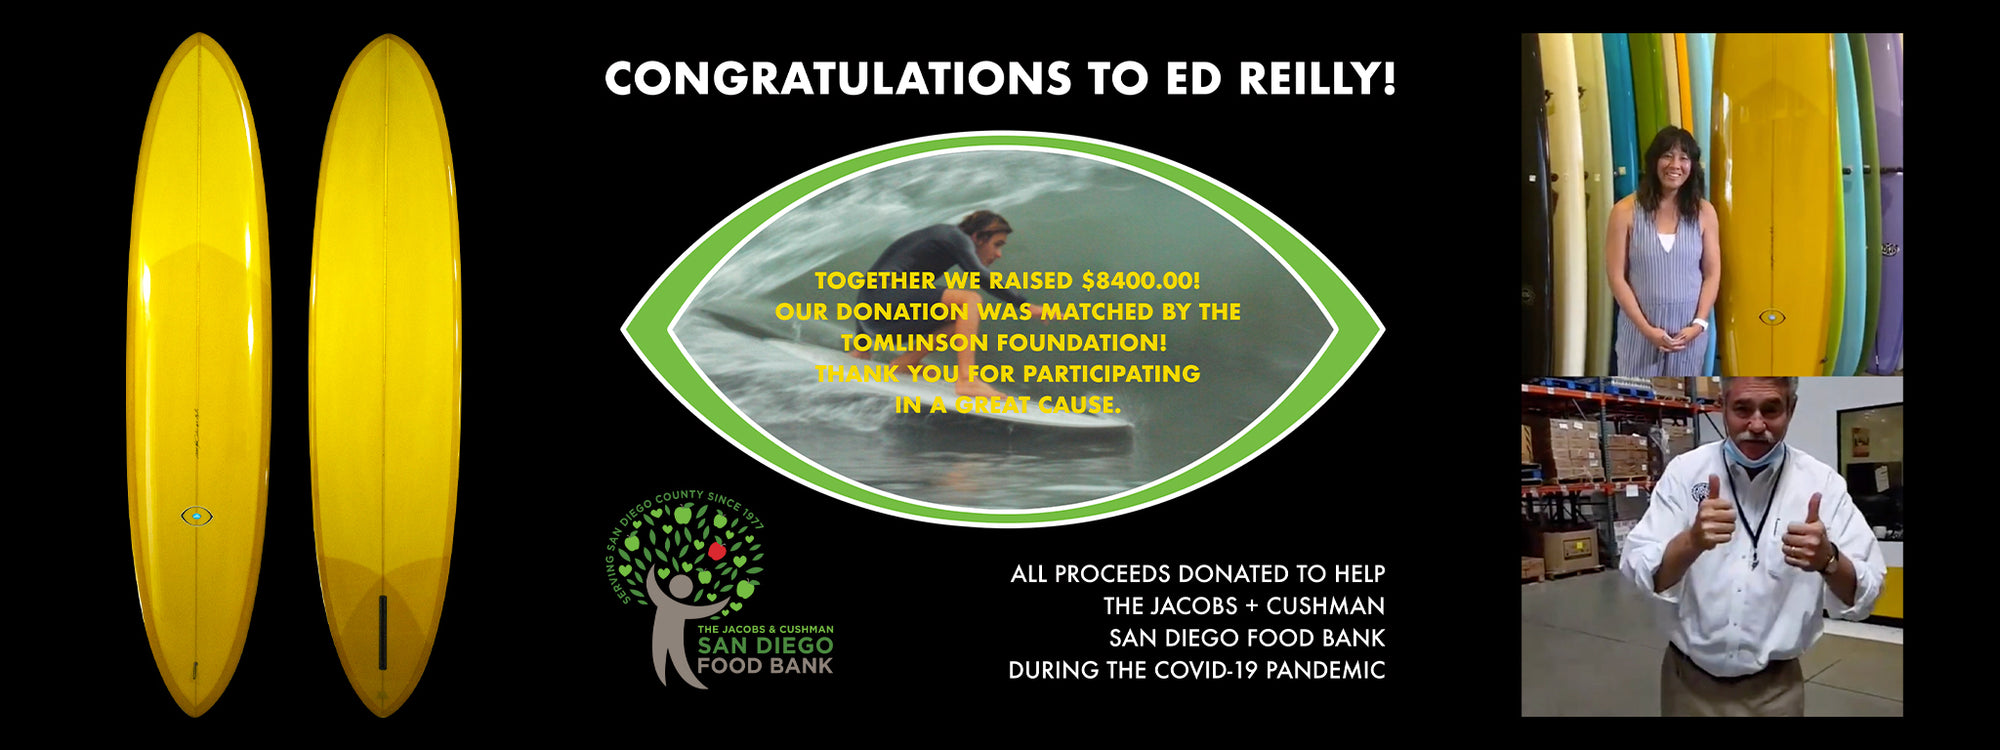 Congratulations to Ed Reilly for Winning the Bing Pig Performer!